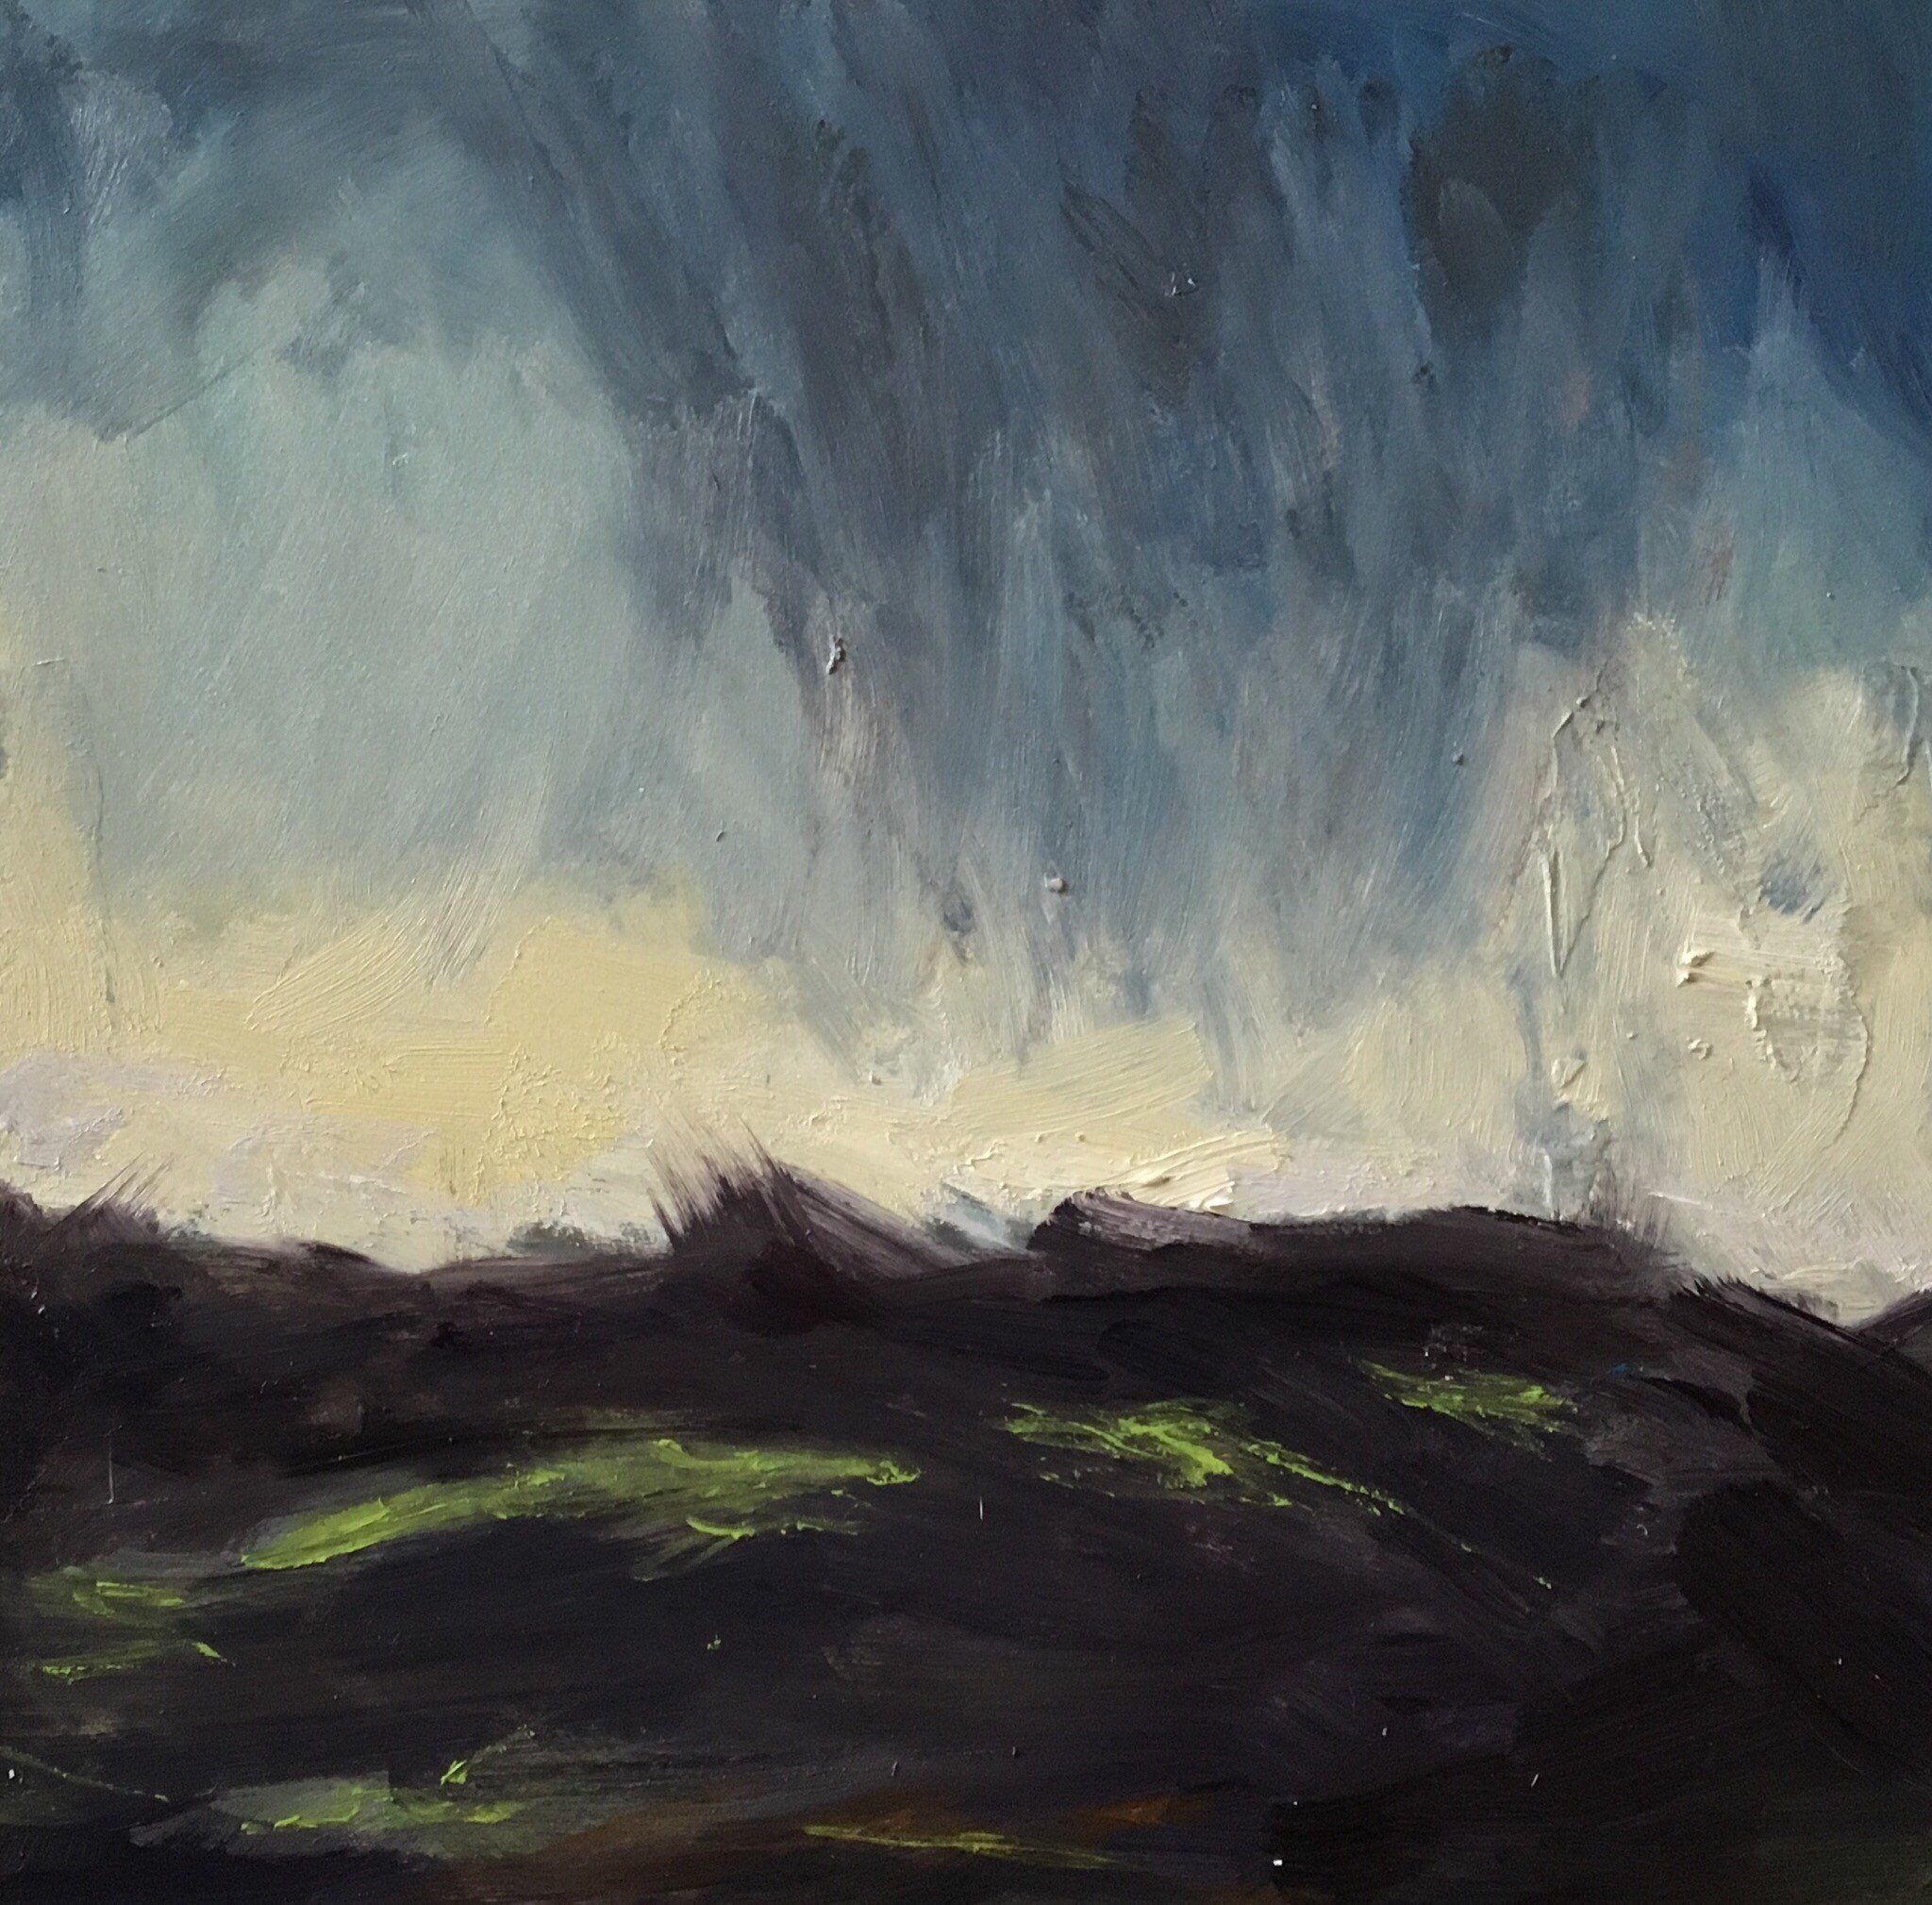 Small Original Abstract Landscape Oil Painting Impressionist Clouds Green Fields Grey Blue Stormy Rain Sky Unframed Wall Art 6x6 Inches Abstract Landscape Oil Painting Landscape Unframed Wall Art